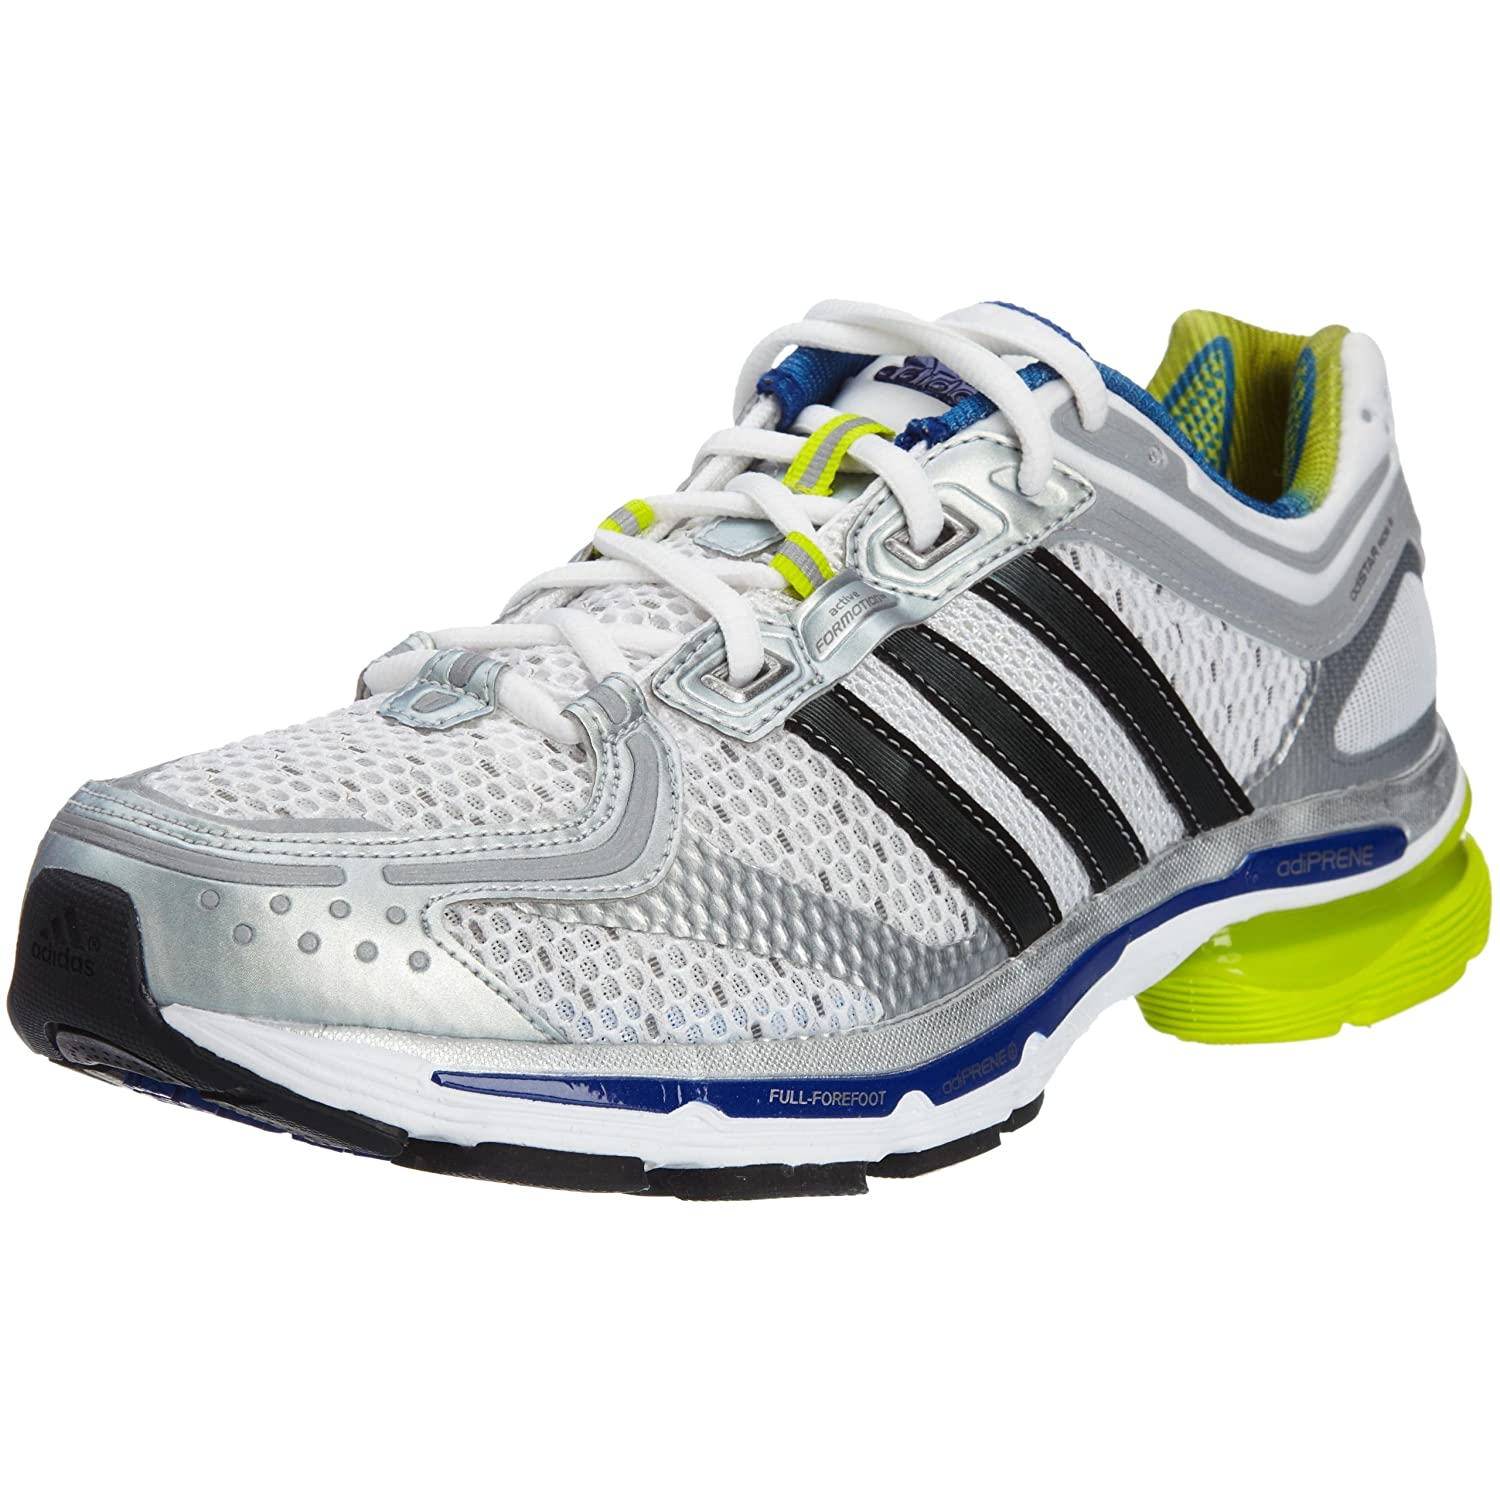 best sneakers 577b9 ecd10 Adidas AdiStar Ride 3 Running Shoes, Size UK6H Amazon.co.uk Shoes  Bags